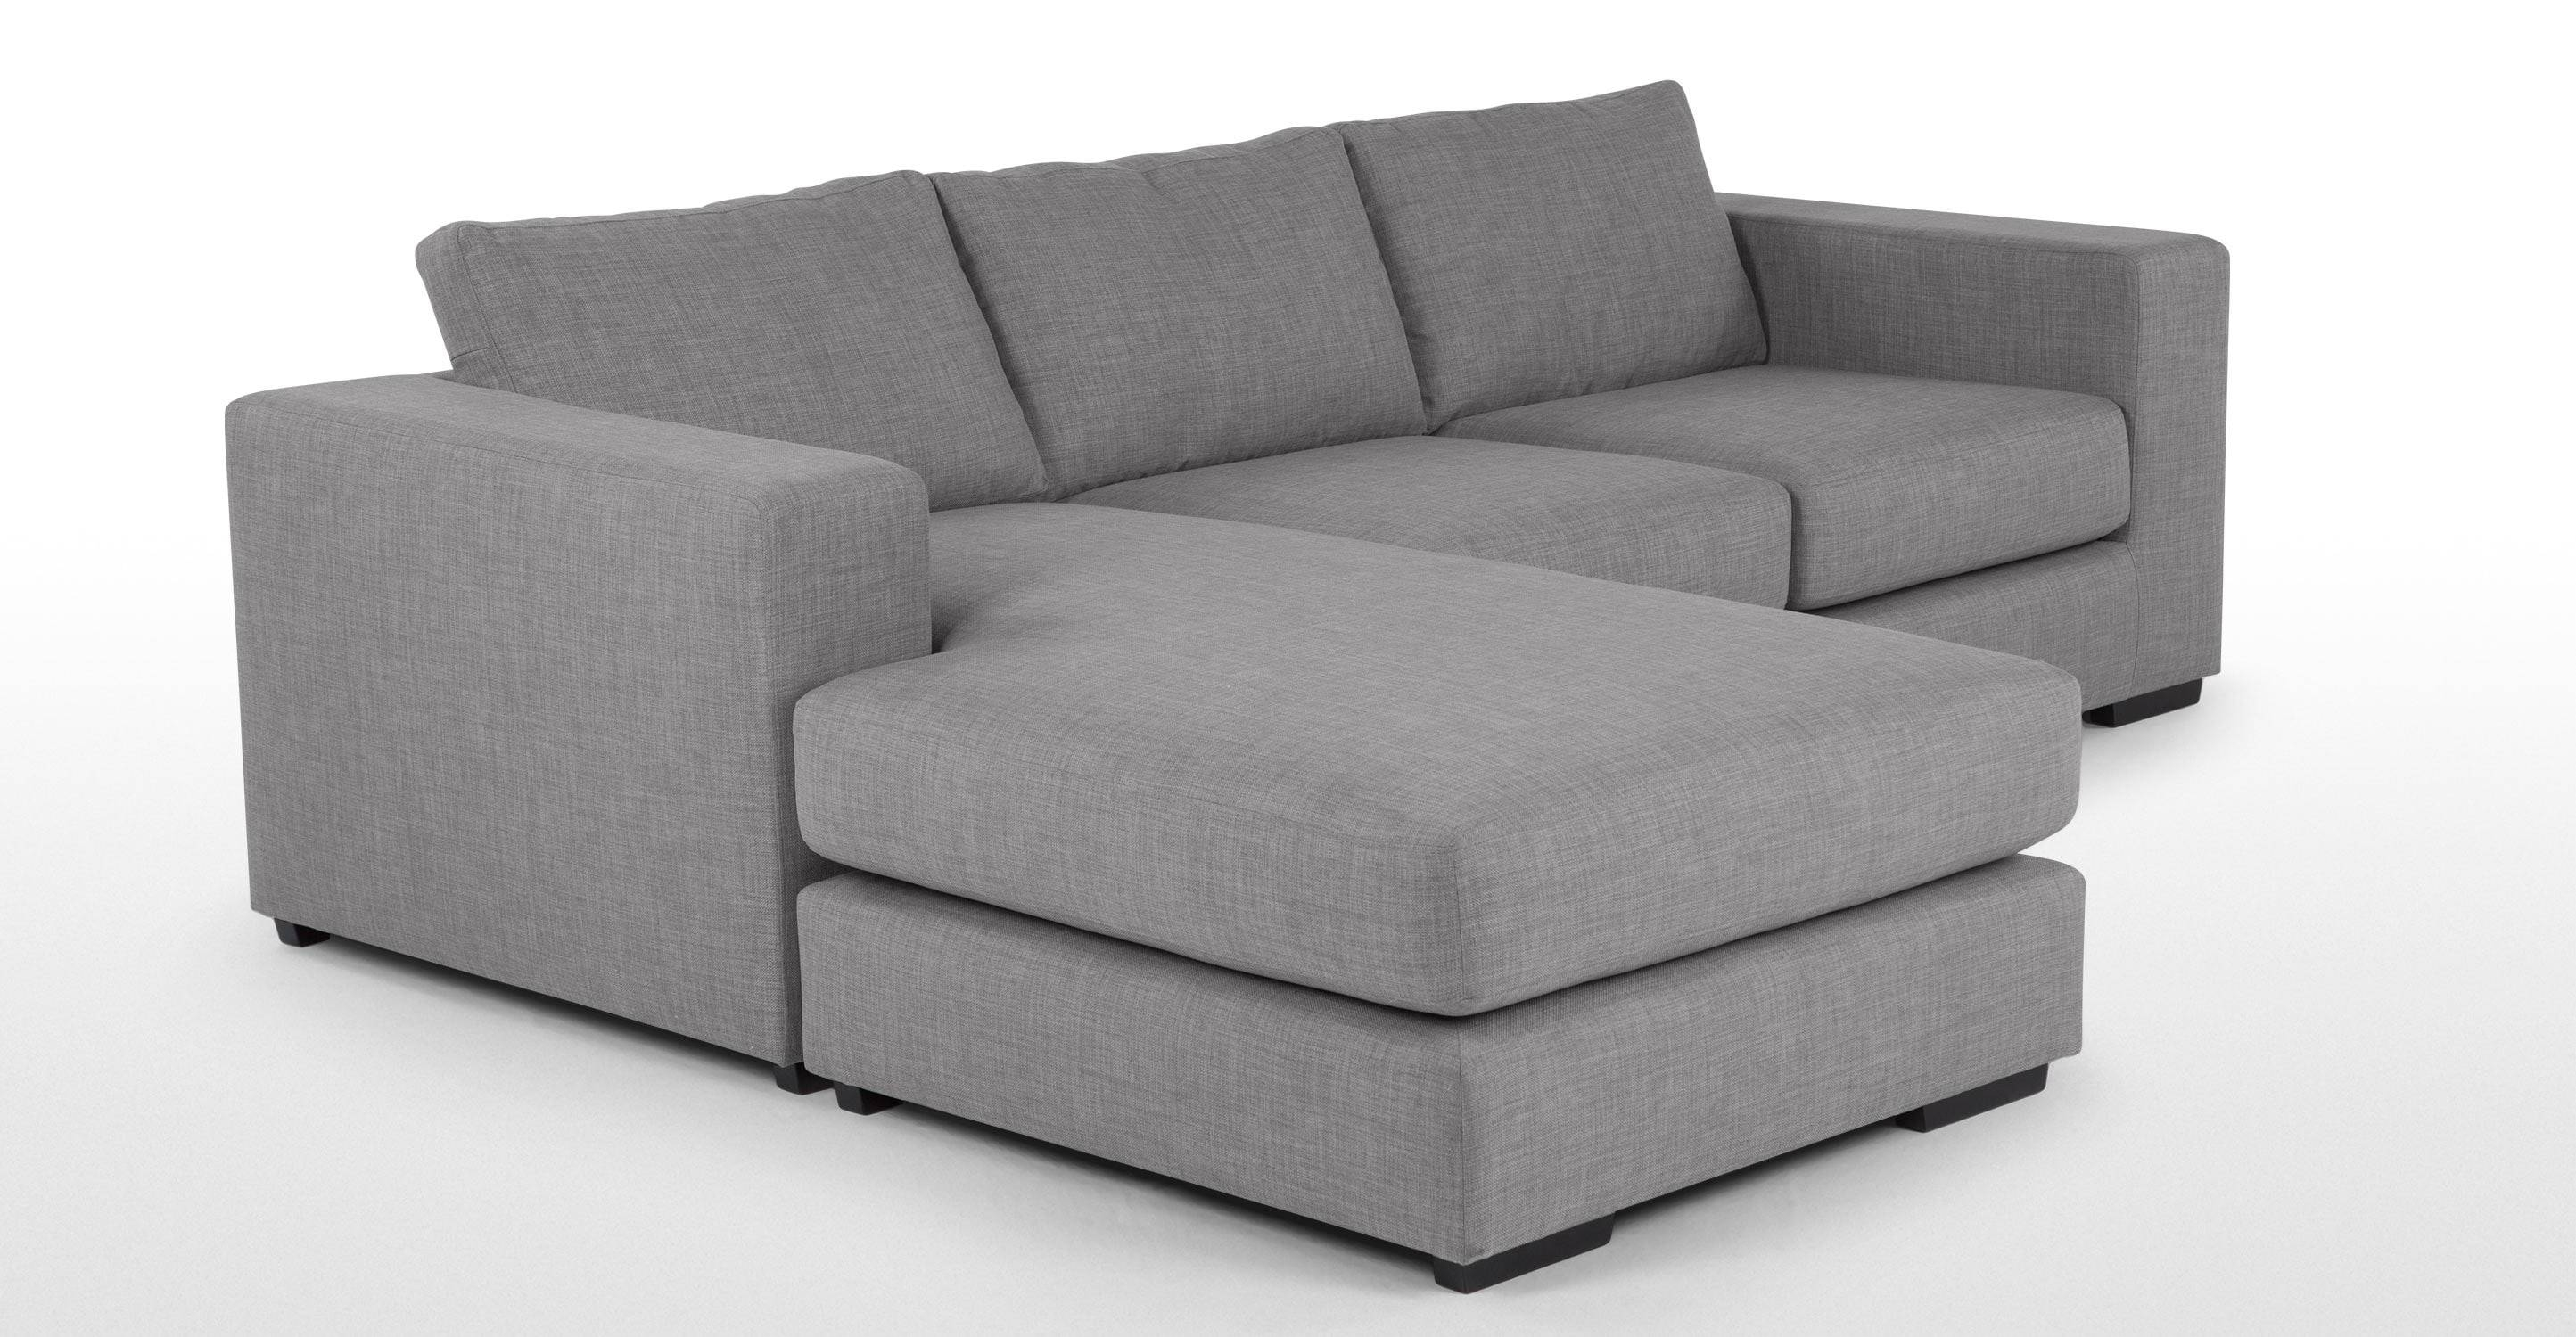 Grey Modular Sofa - Leather Sectional Sofa with regard to Modular Corner Sofas (Image 22 of 30)